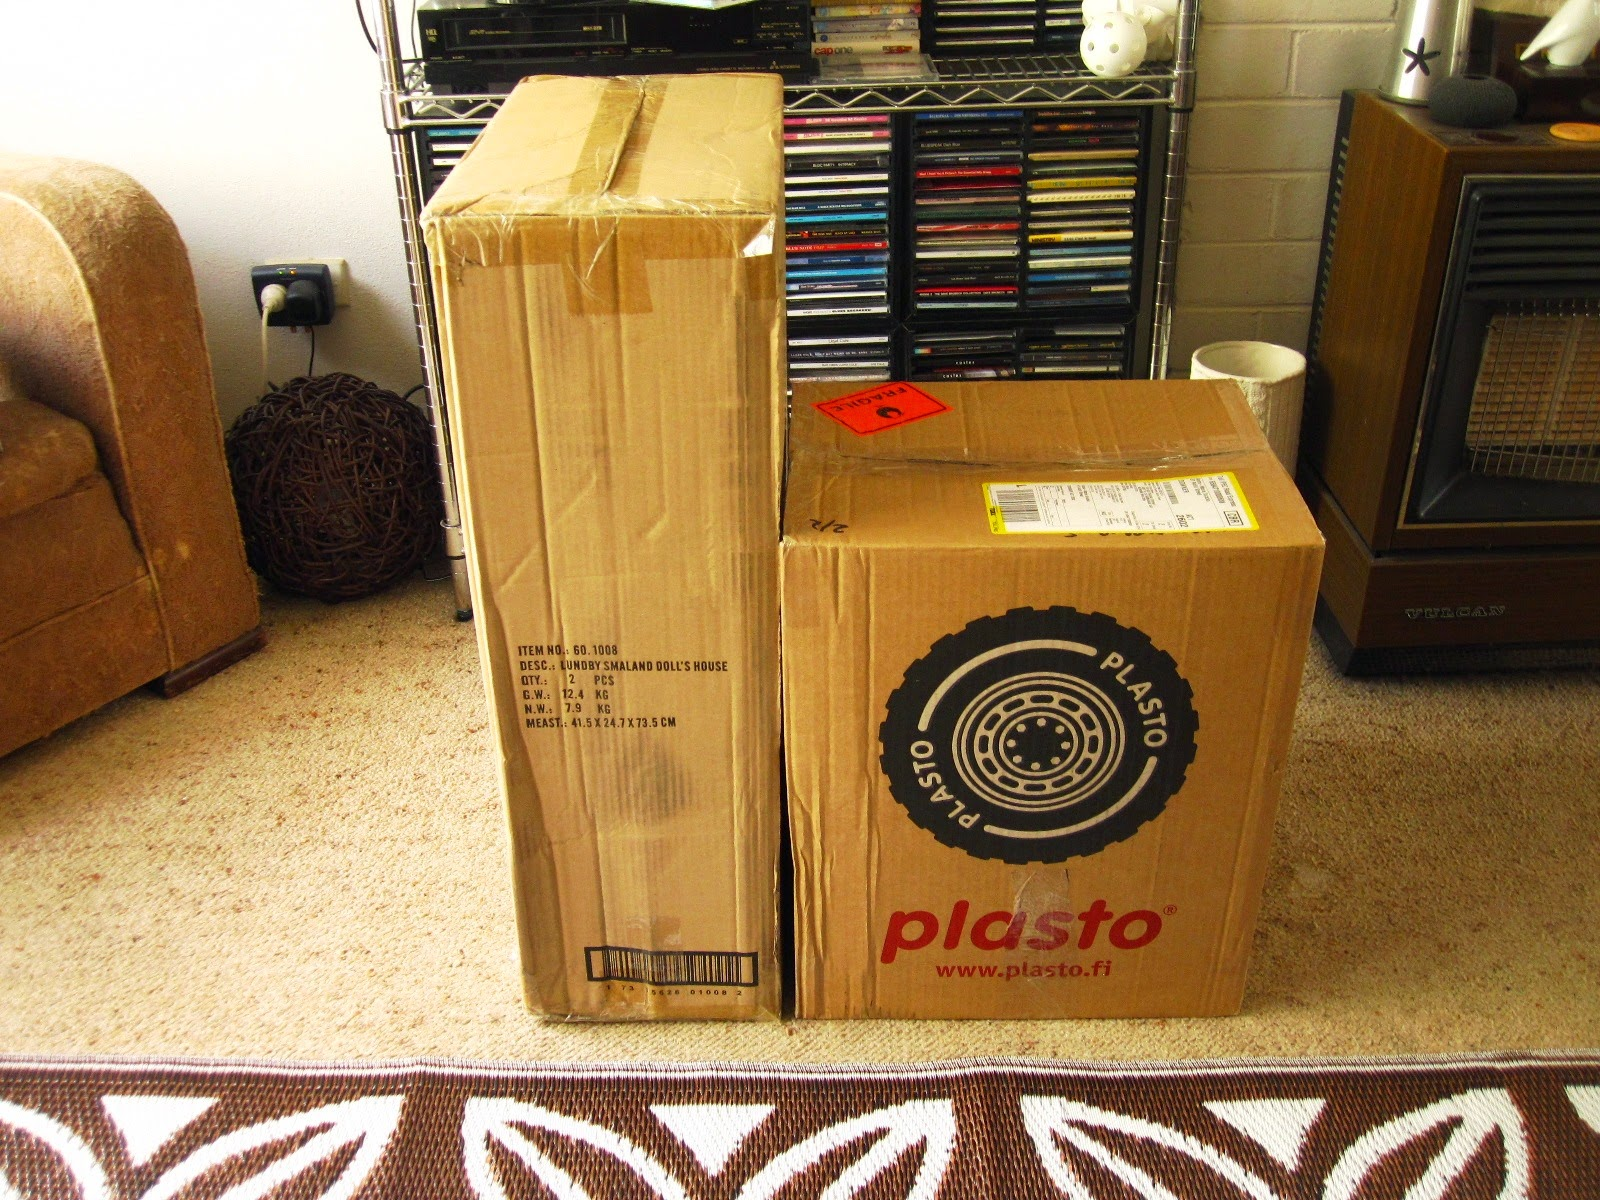 Two large shipping cartons sitting on a living room floor.